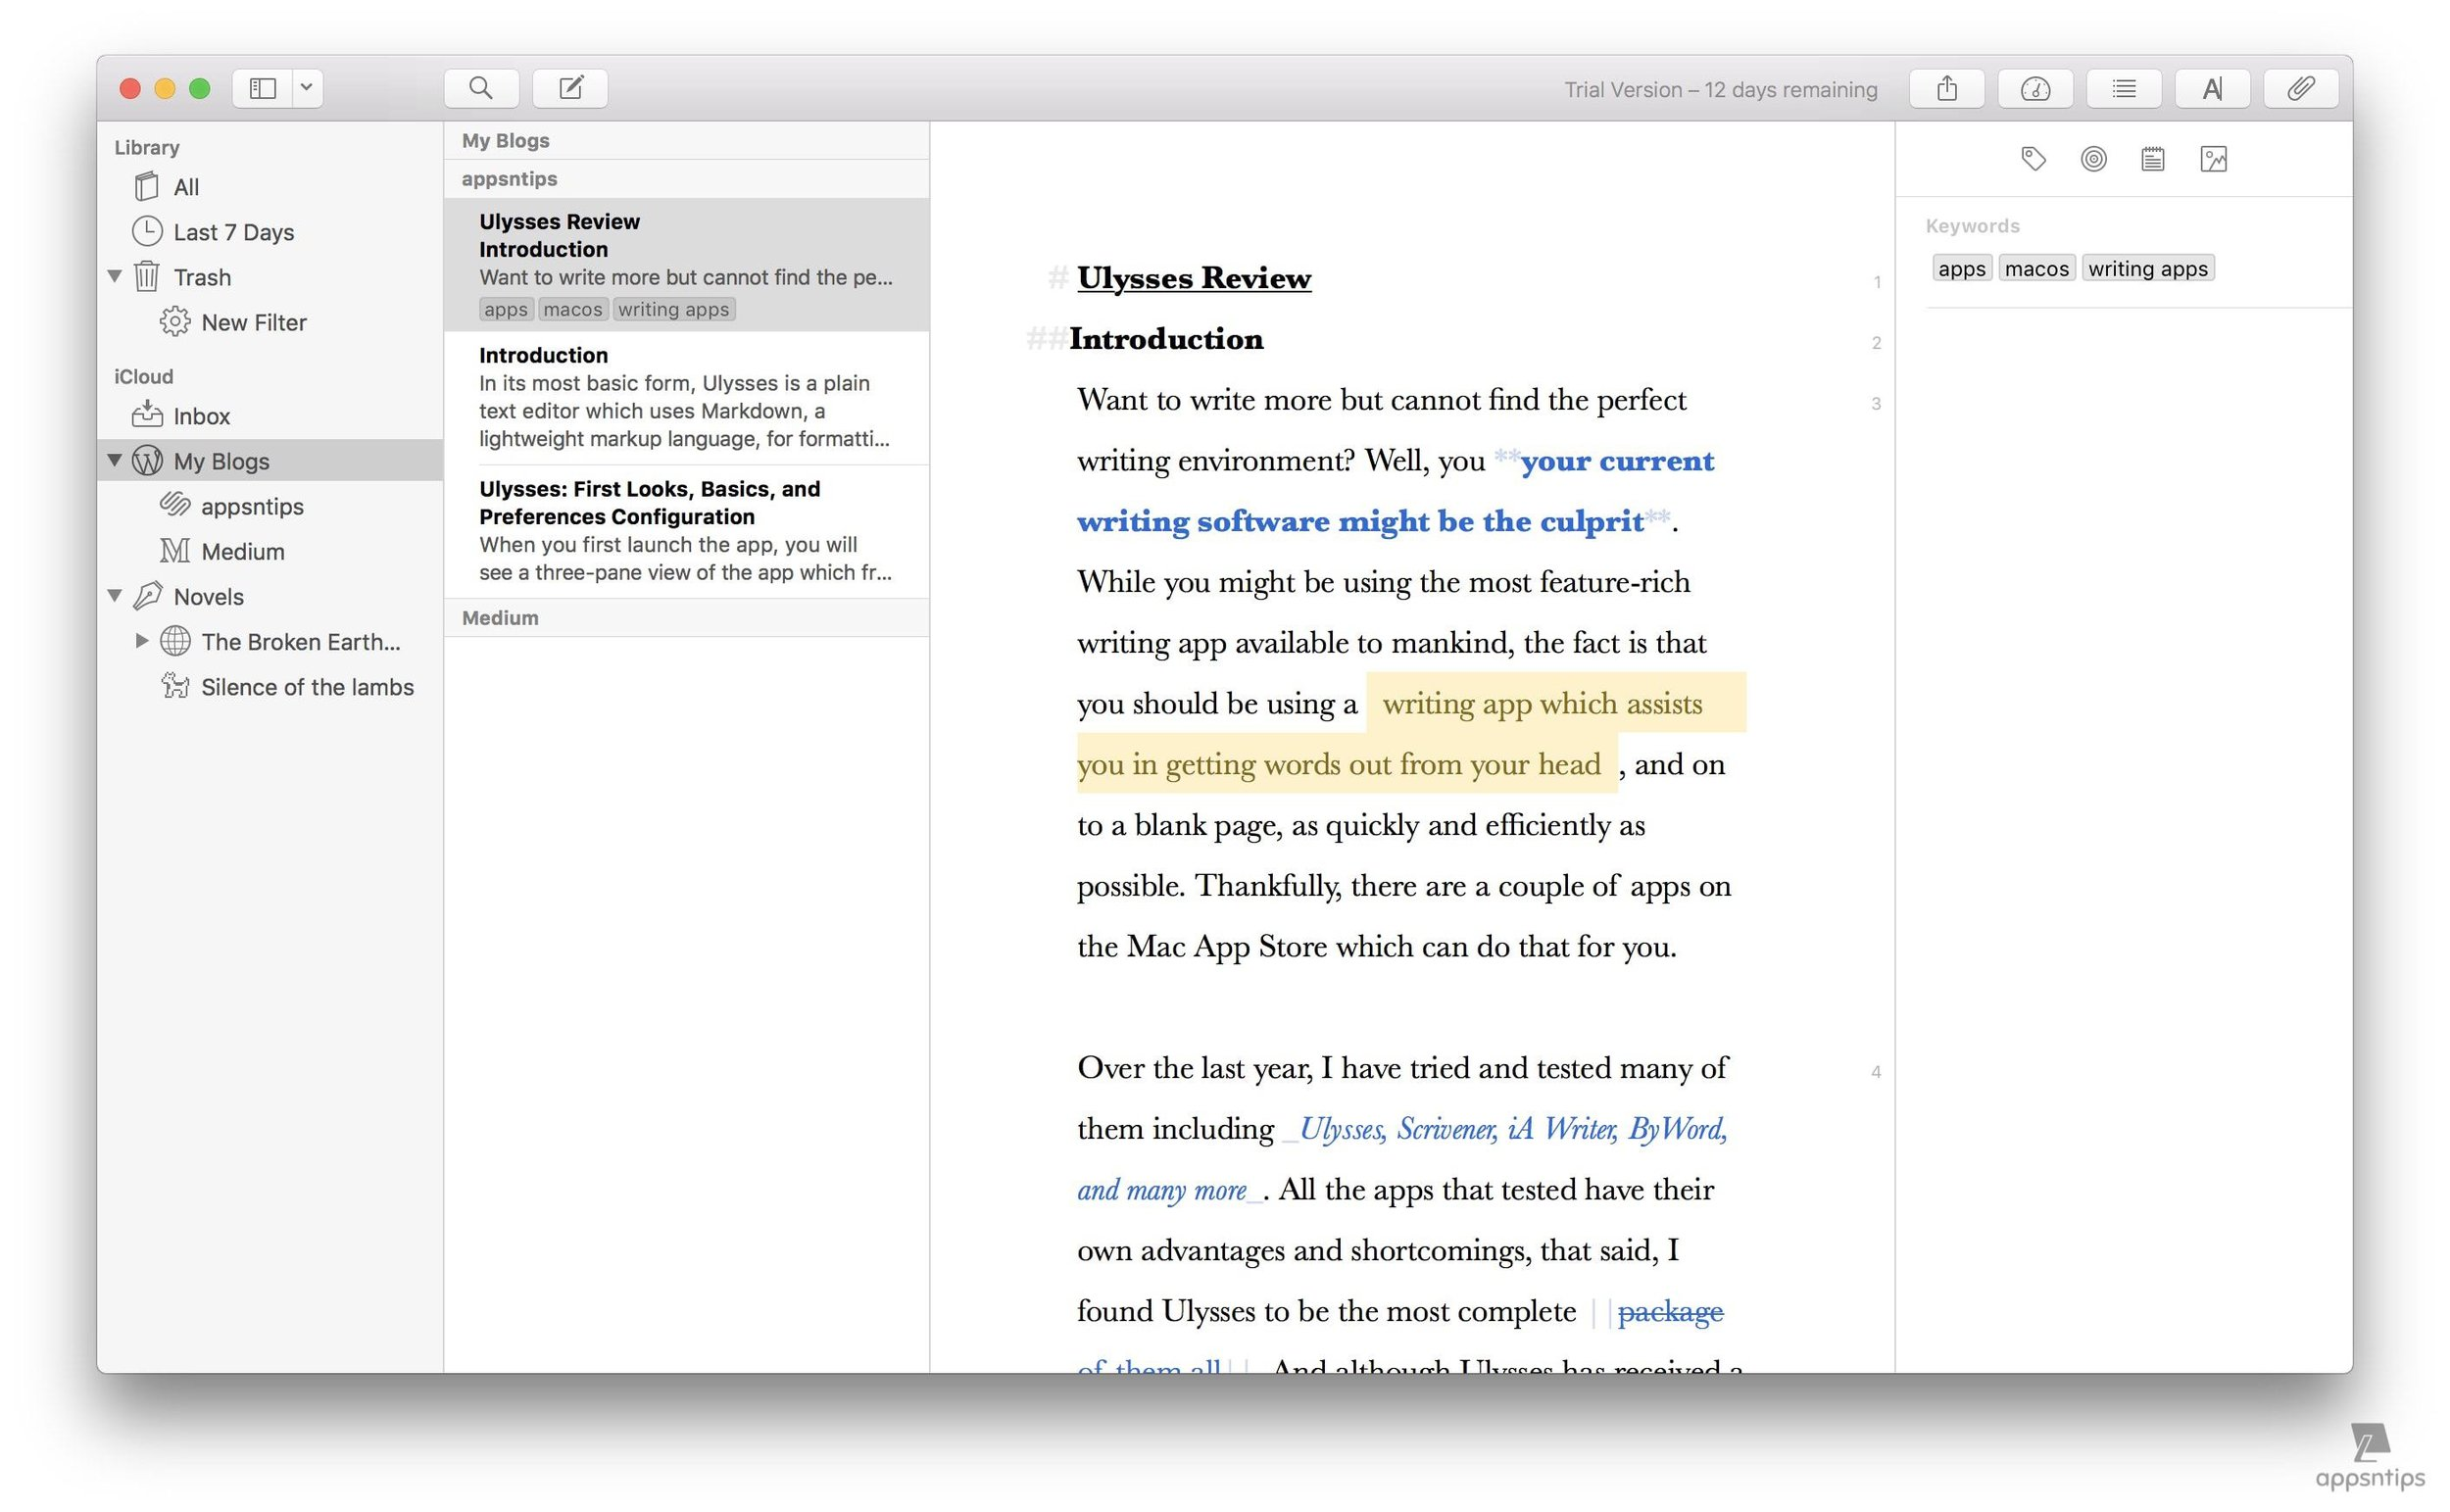 Ulysses: Keywords, Filters, and Search 1.jpg